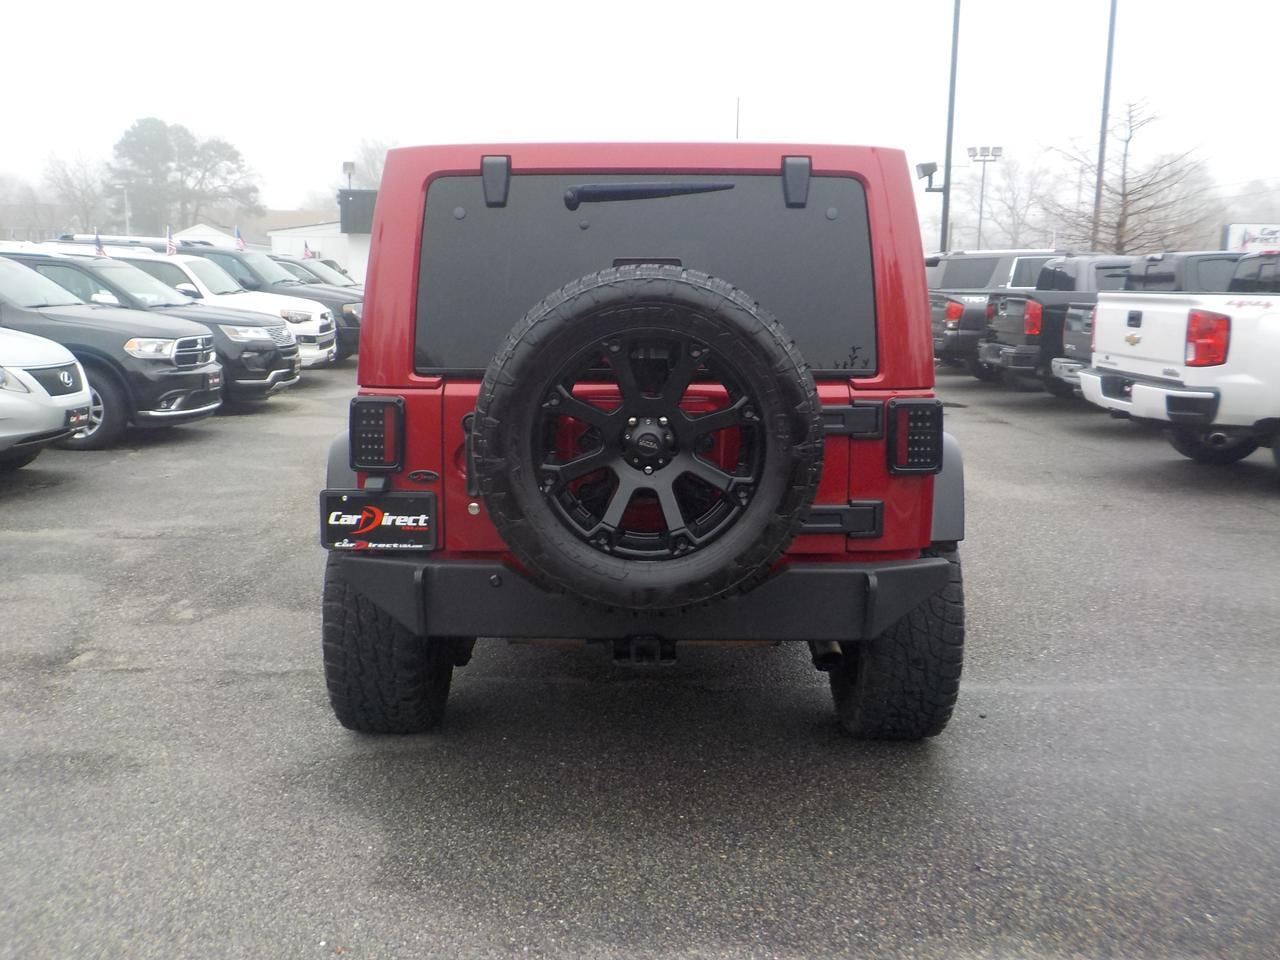 2011 JEEP WRANGLER UNLIMITED SAHARA 4X4, HARD TOP,  LEATHER SEATS, NAVIGATION, TOW PACKAGE,  ONLY 43K MILES! Virginia Beach VA